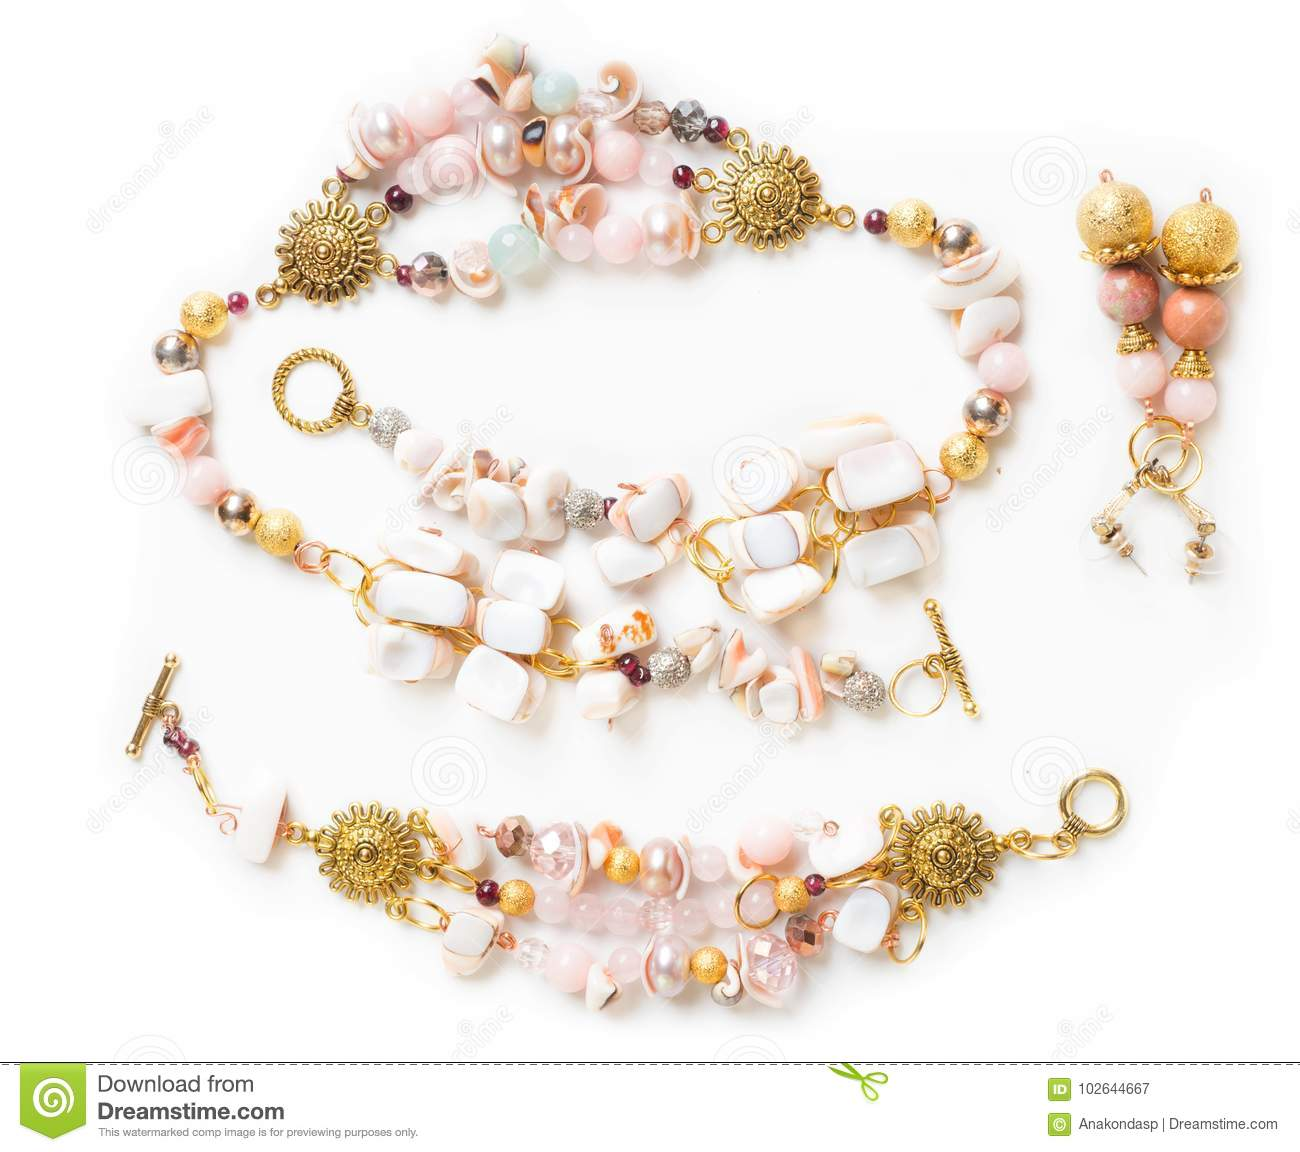 Gold bracelet and necklace with pearls and pink quartz and earr